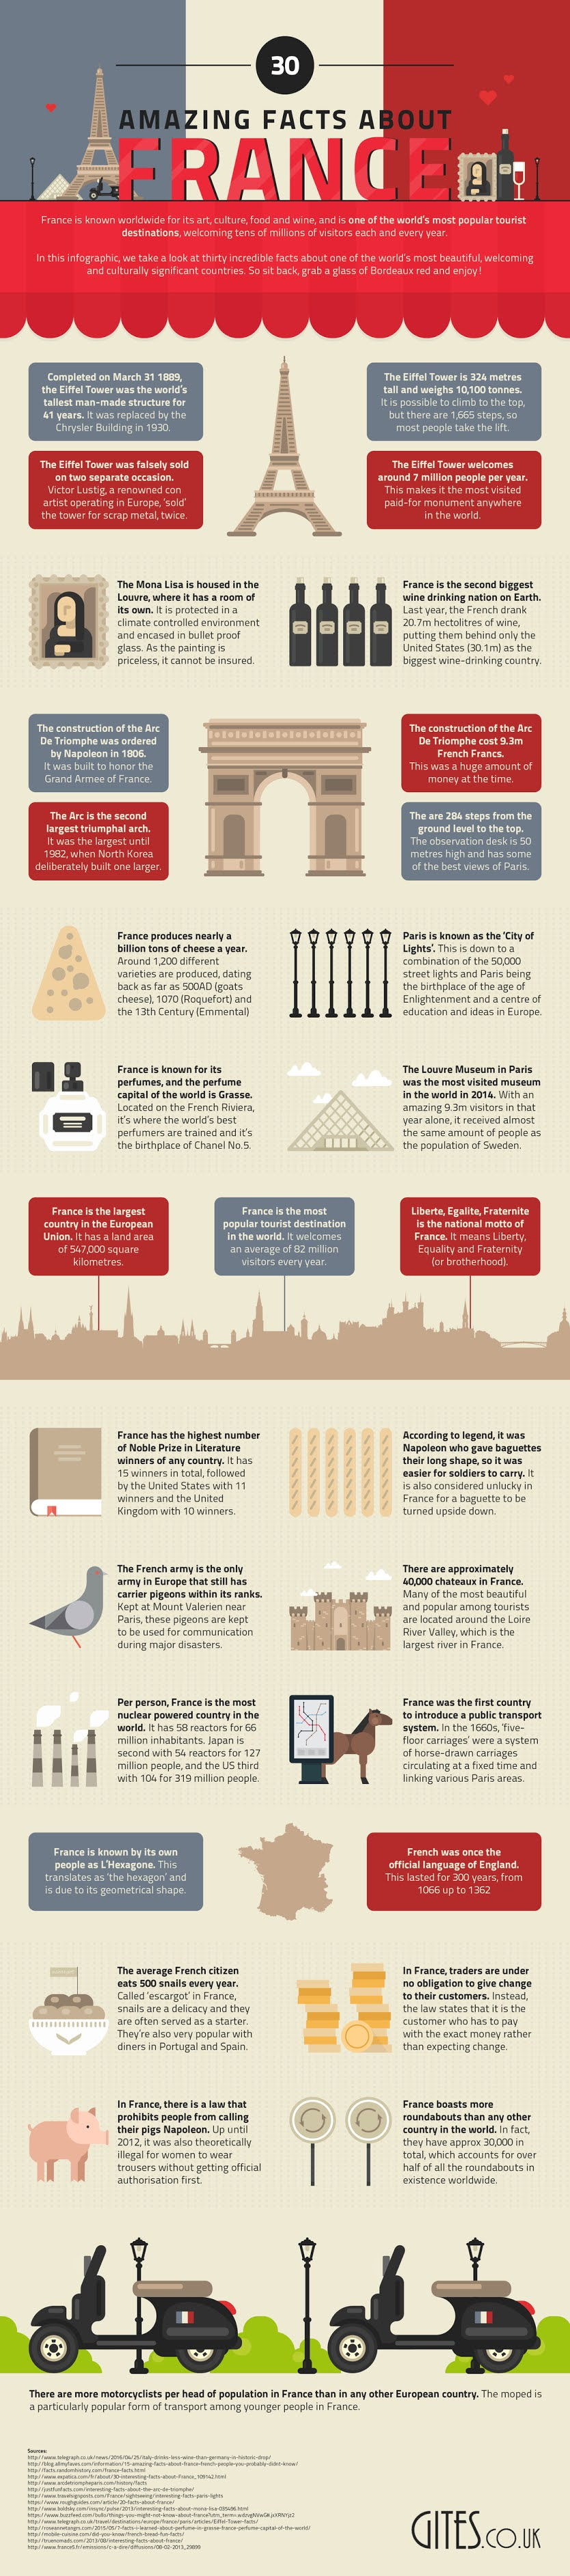 30 Amazing Facts About France #infographic #News #France #Facts #Europe